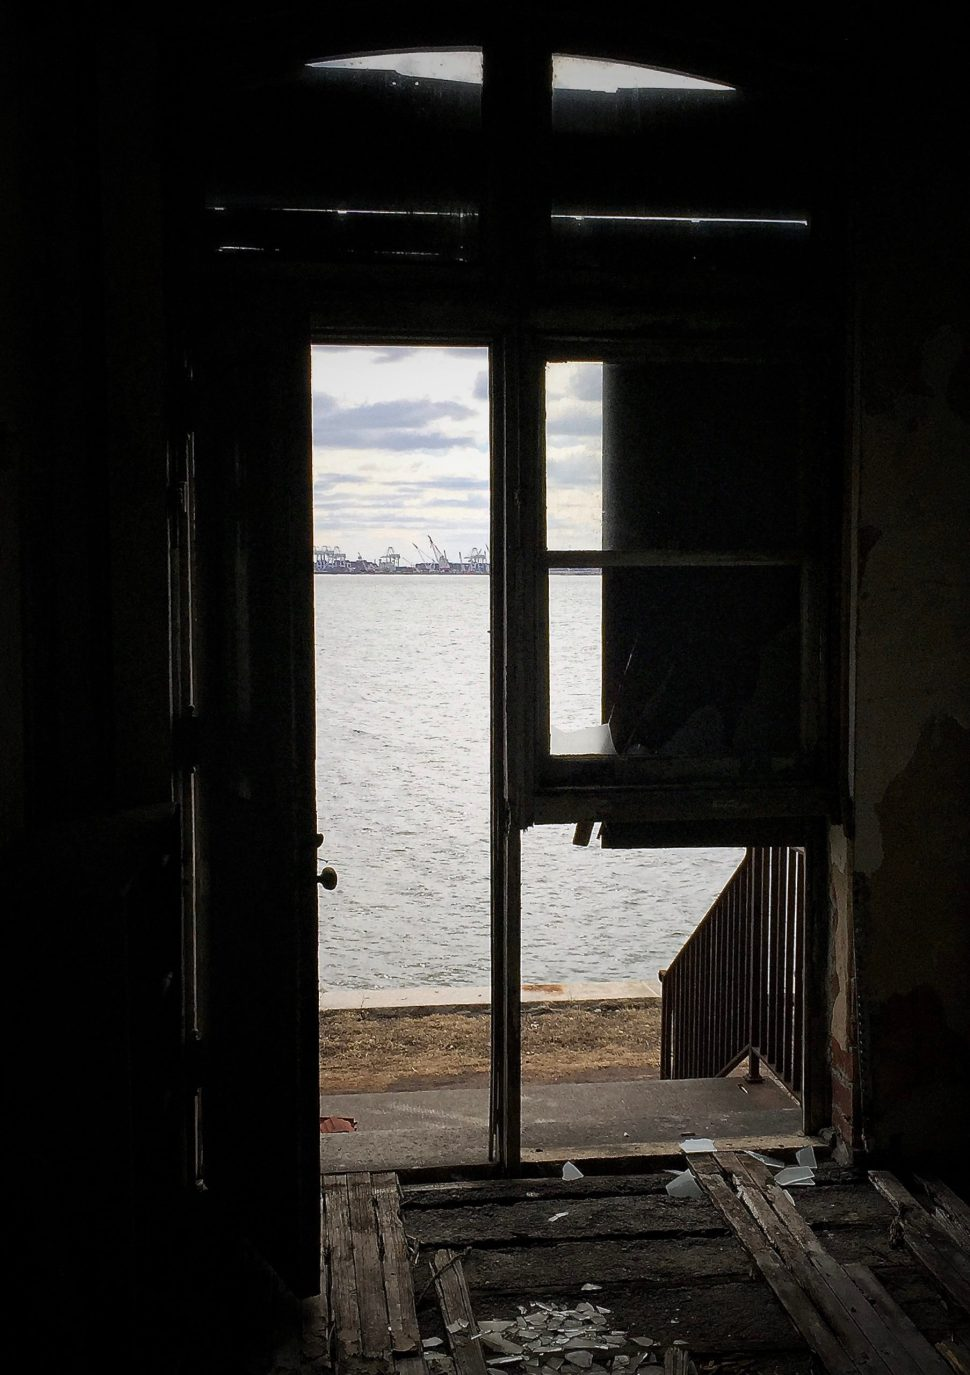 (6) Isolation Ward, Ellis Island. Photo by Rick Stachura. March 28, 2015.